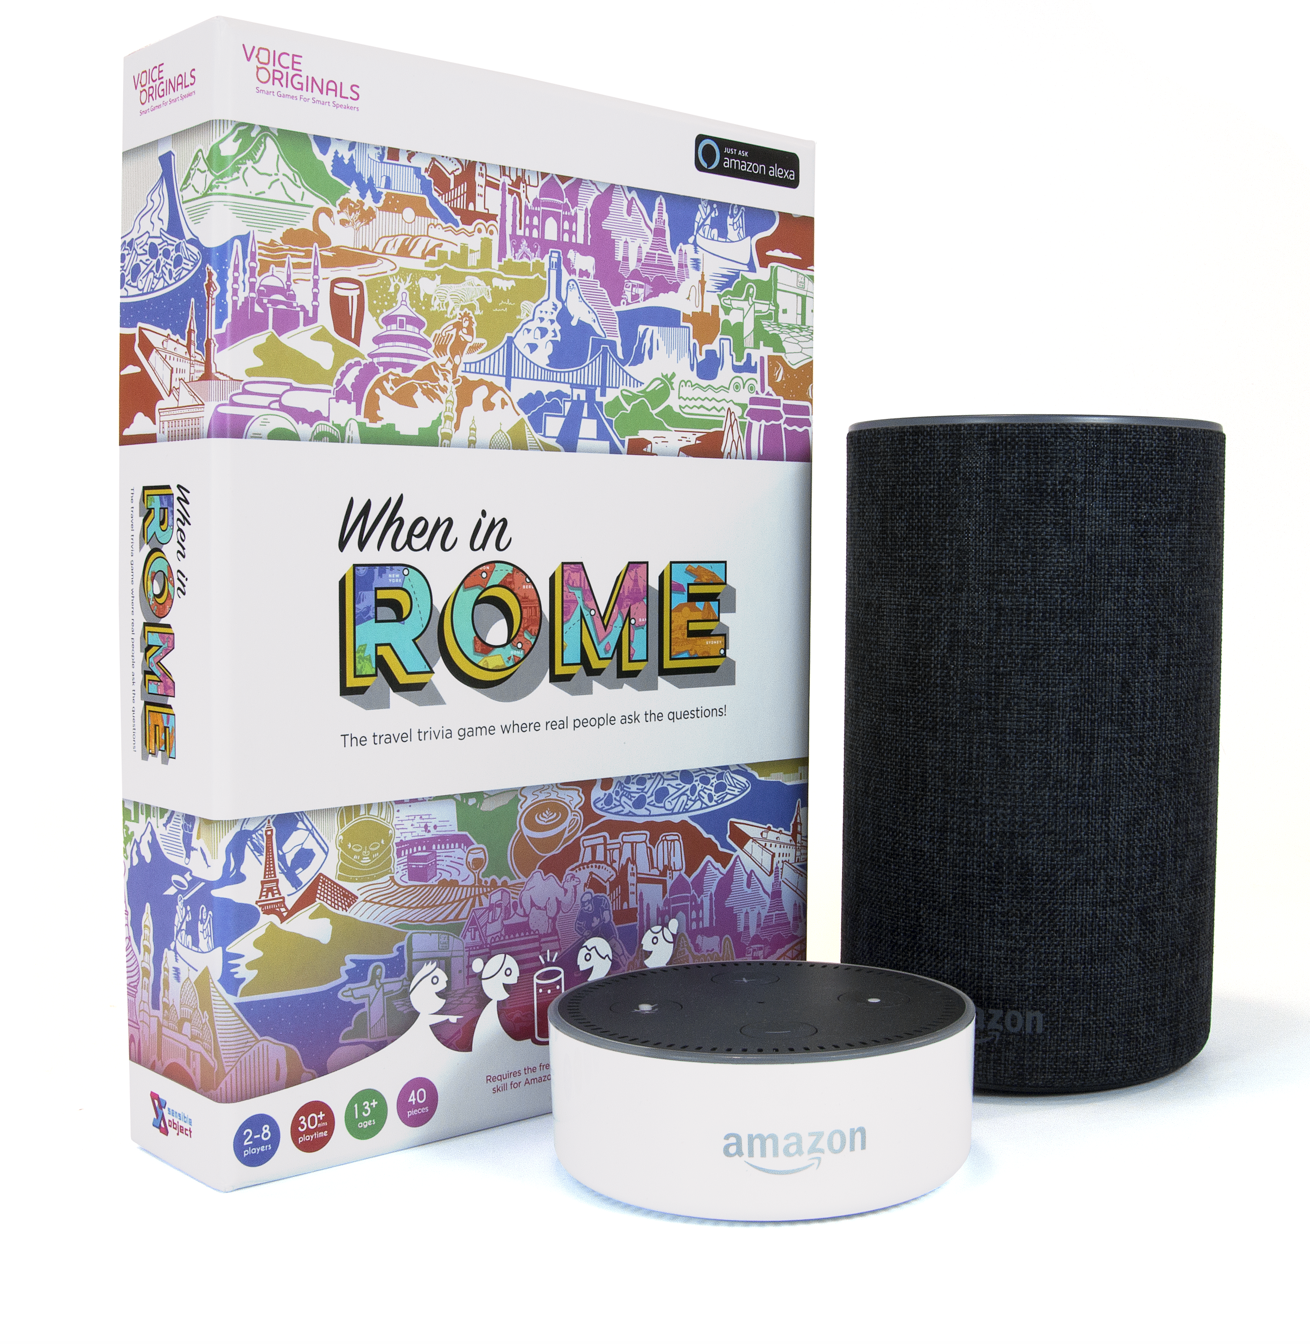 techcrunch.com - John Biggs - When In Rome is the first Alexa-powered board game